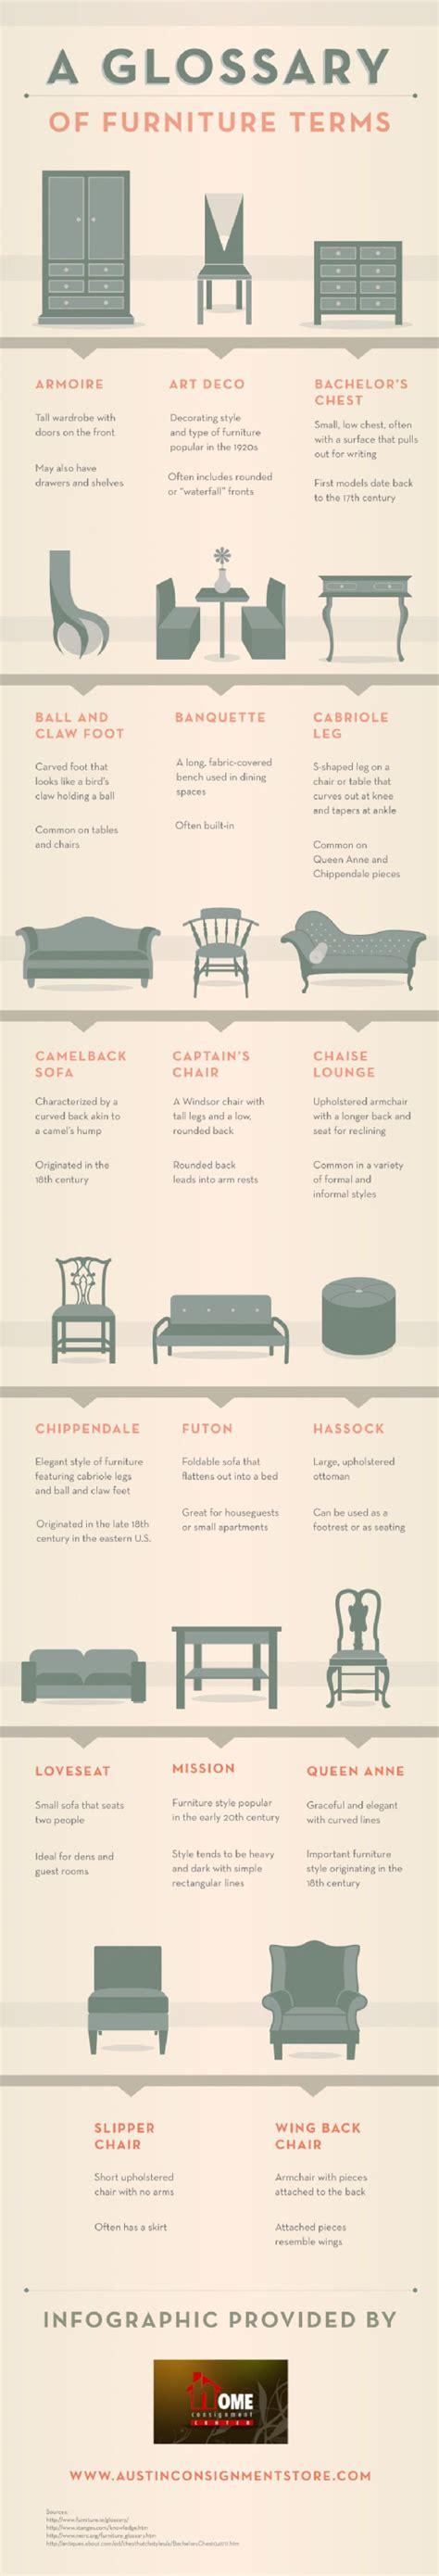 interior design terms a glossary of furniture terms interior design terms